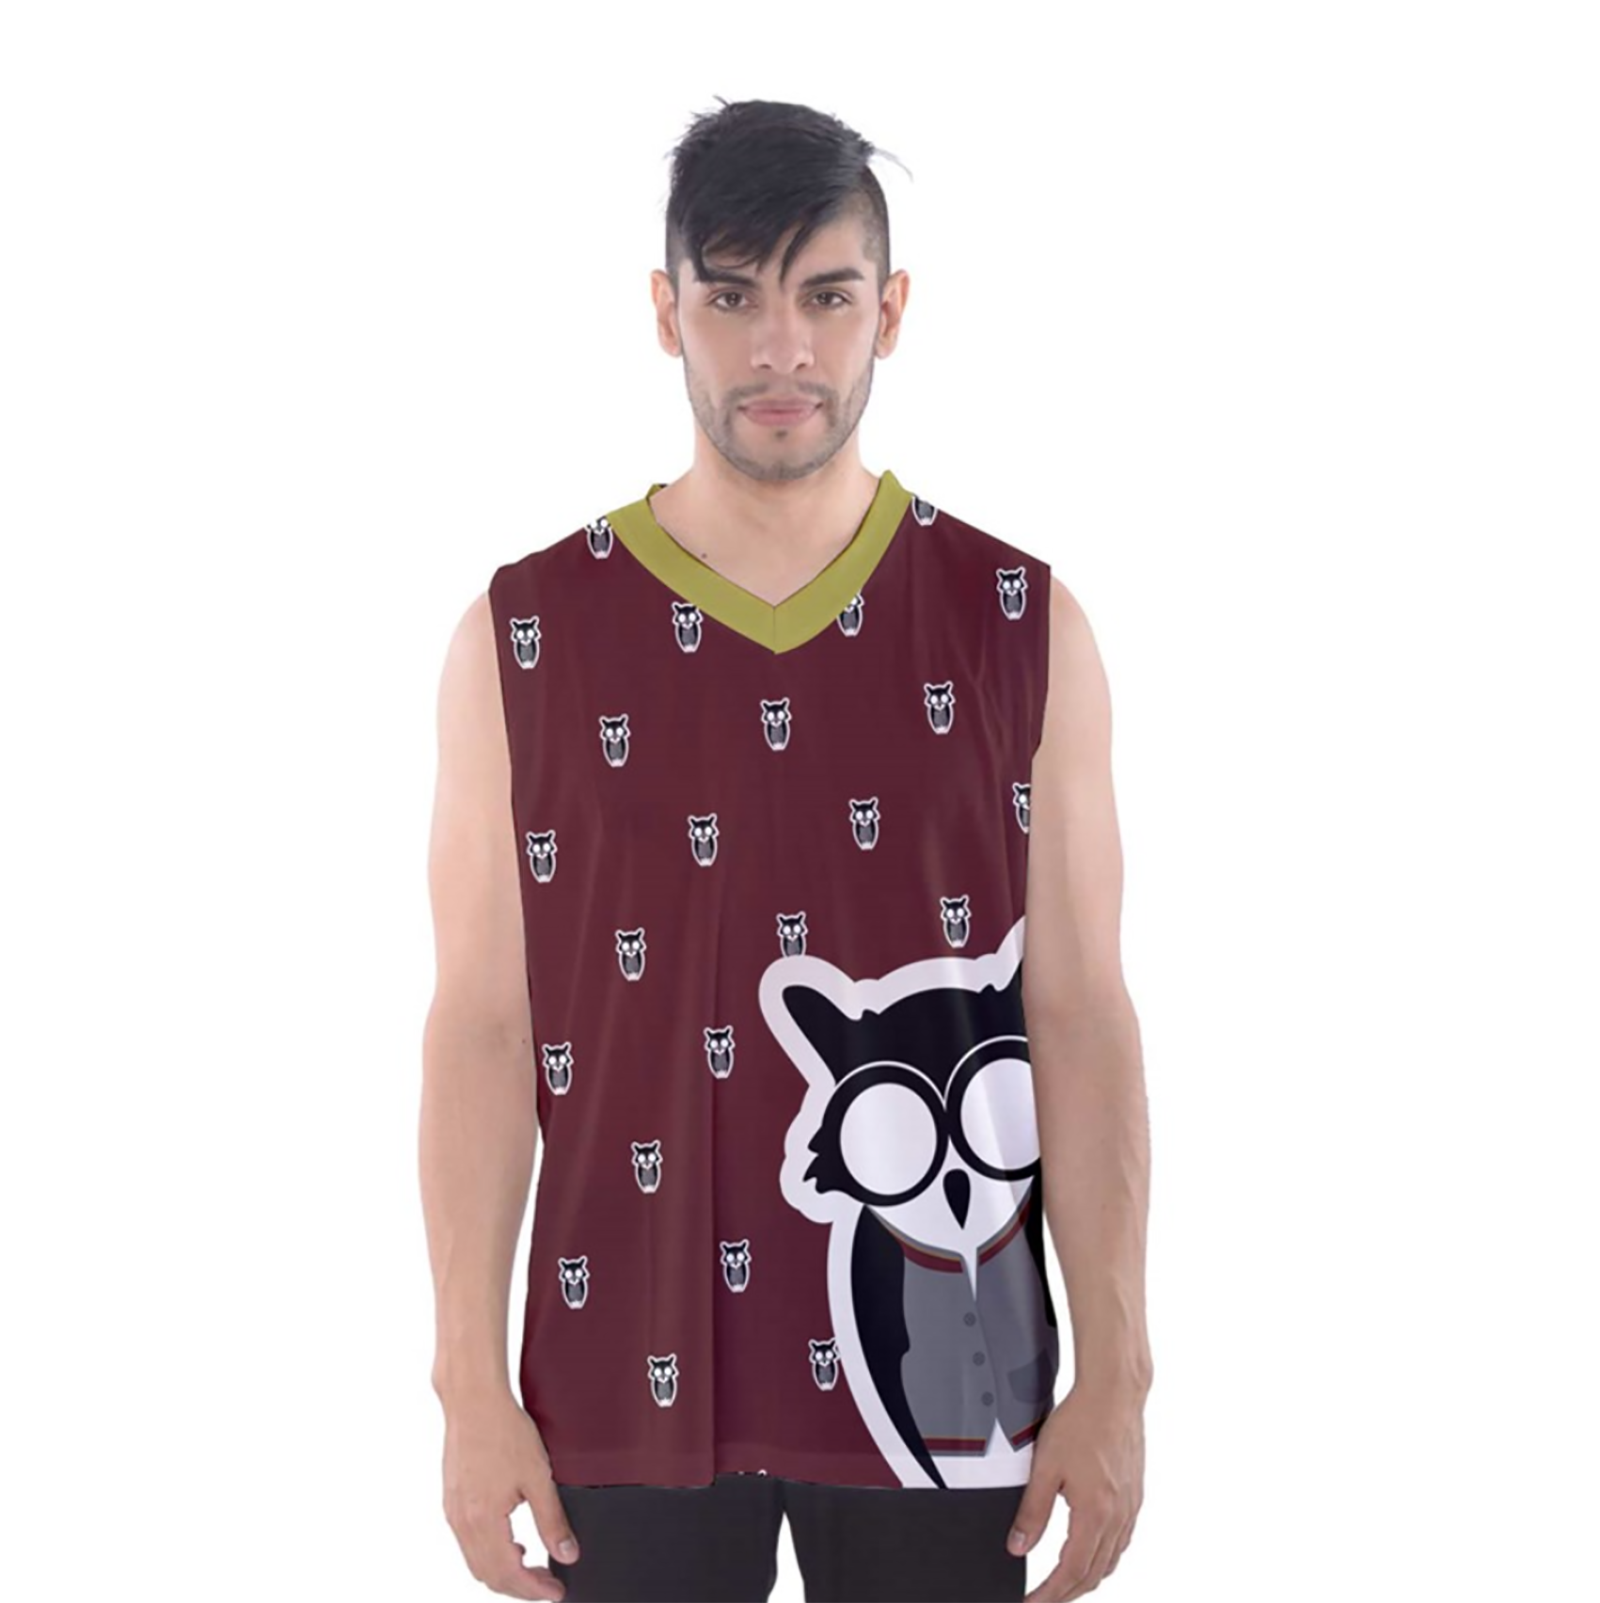 Red & Gold Owl Men's Tank Top - Inspired by Gryffindor